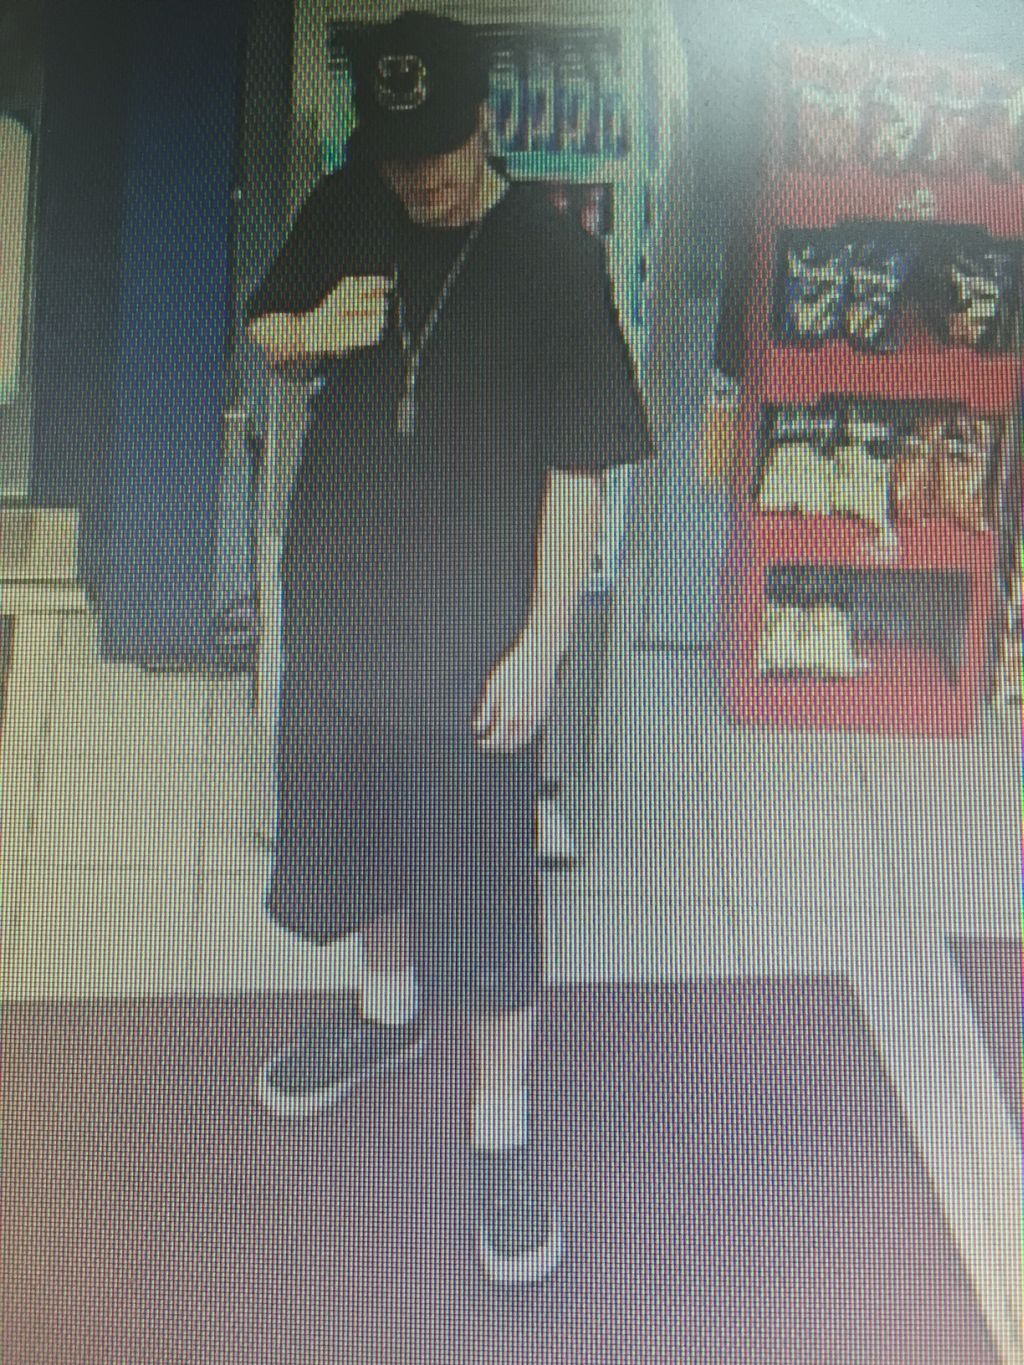 suspect - theft of donation box